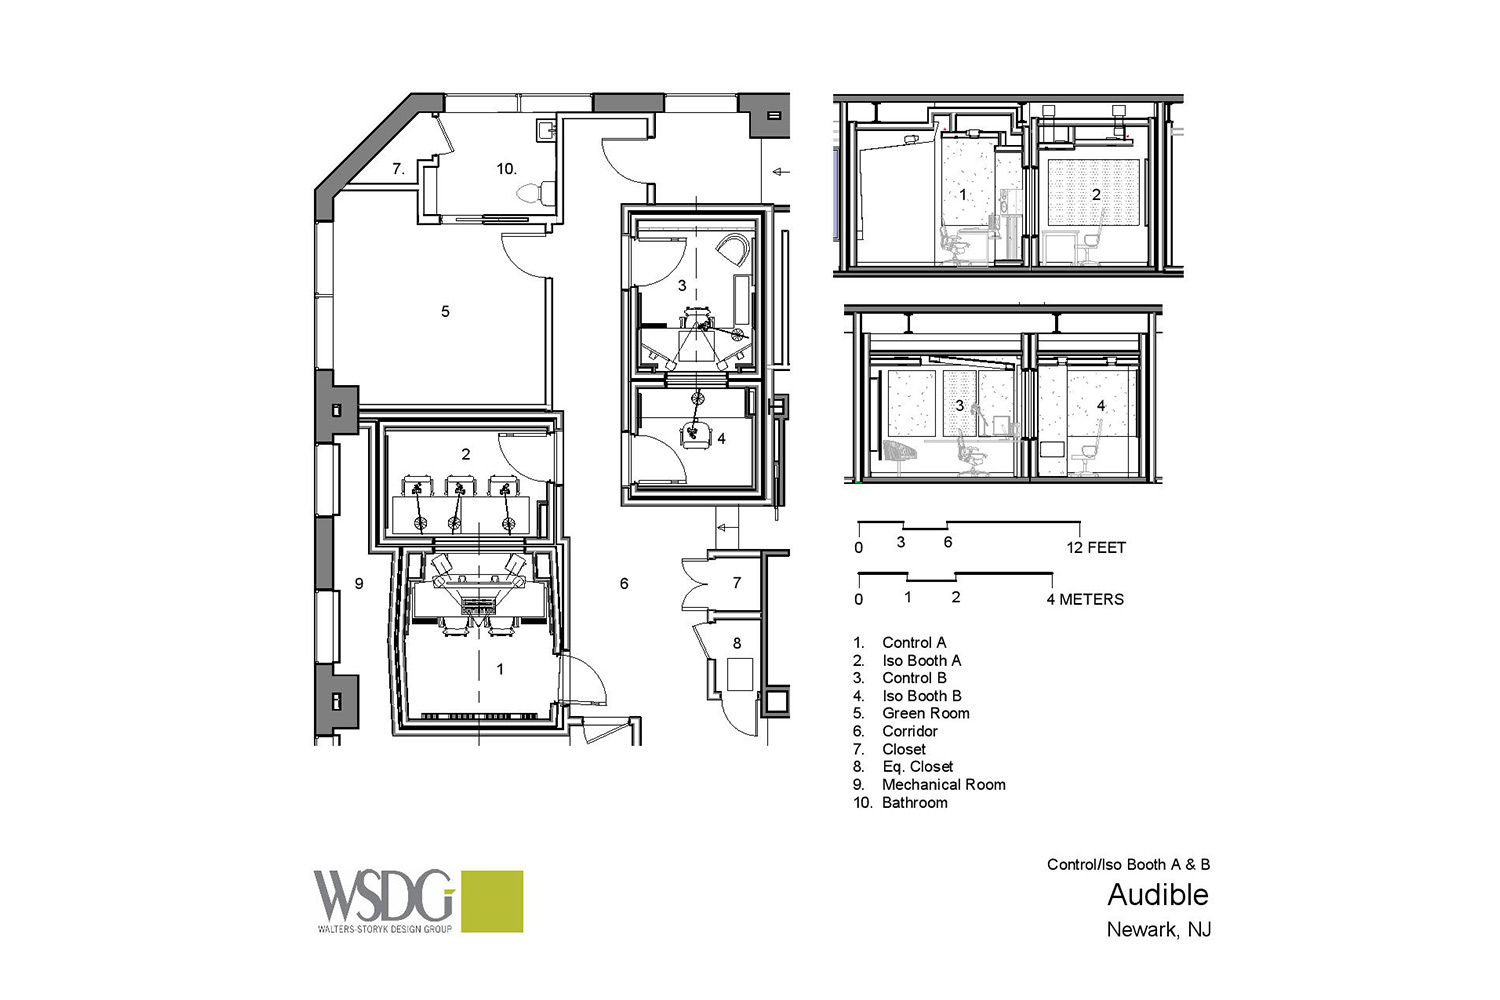 Audible is the world's largest producer/distributor of downloadable audiobooks and other spoken-word entertainment. WSDG was commissioned to design their new state-of-the-art recording studio complex. Presentation Drawing 4